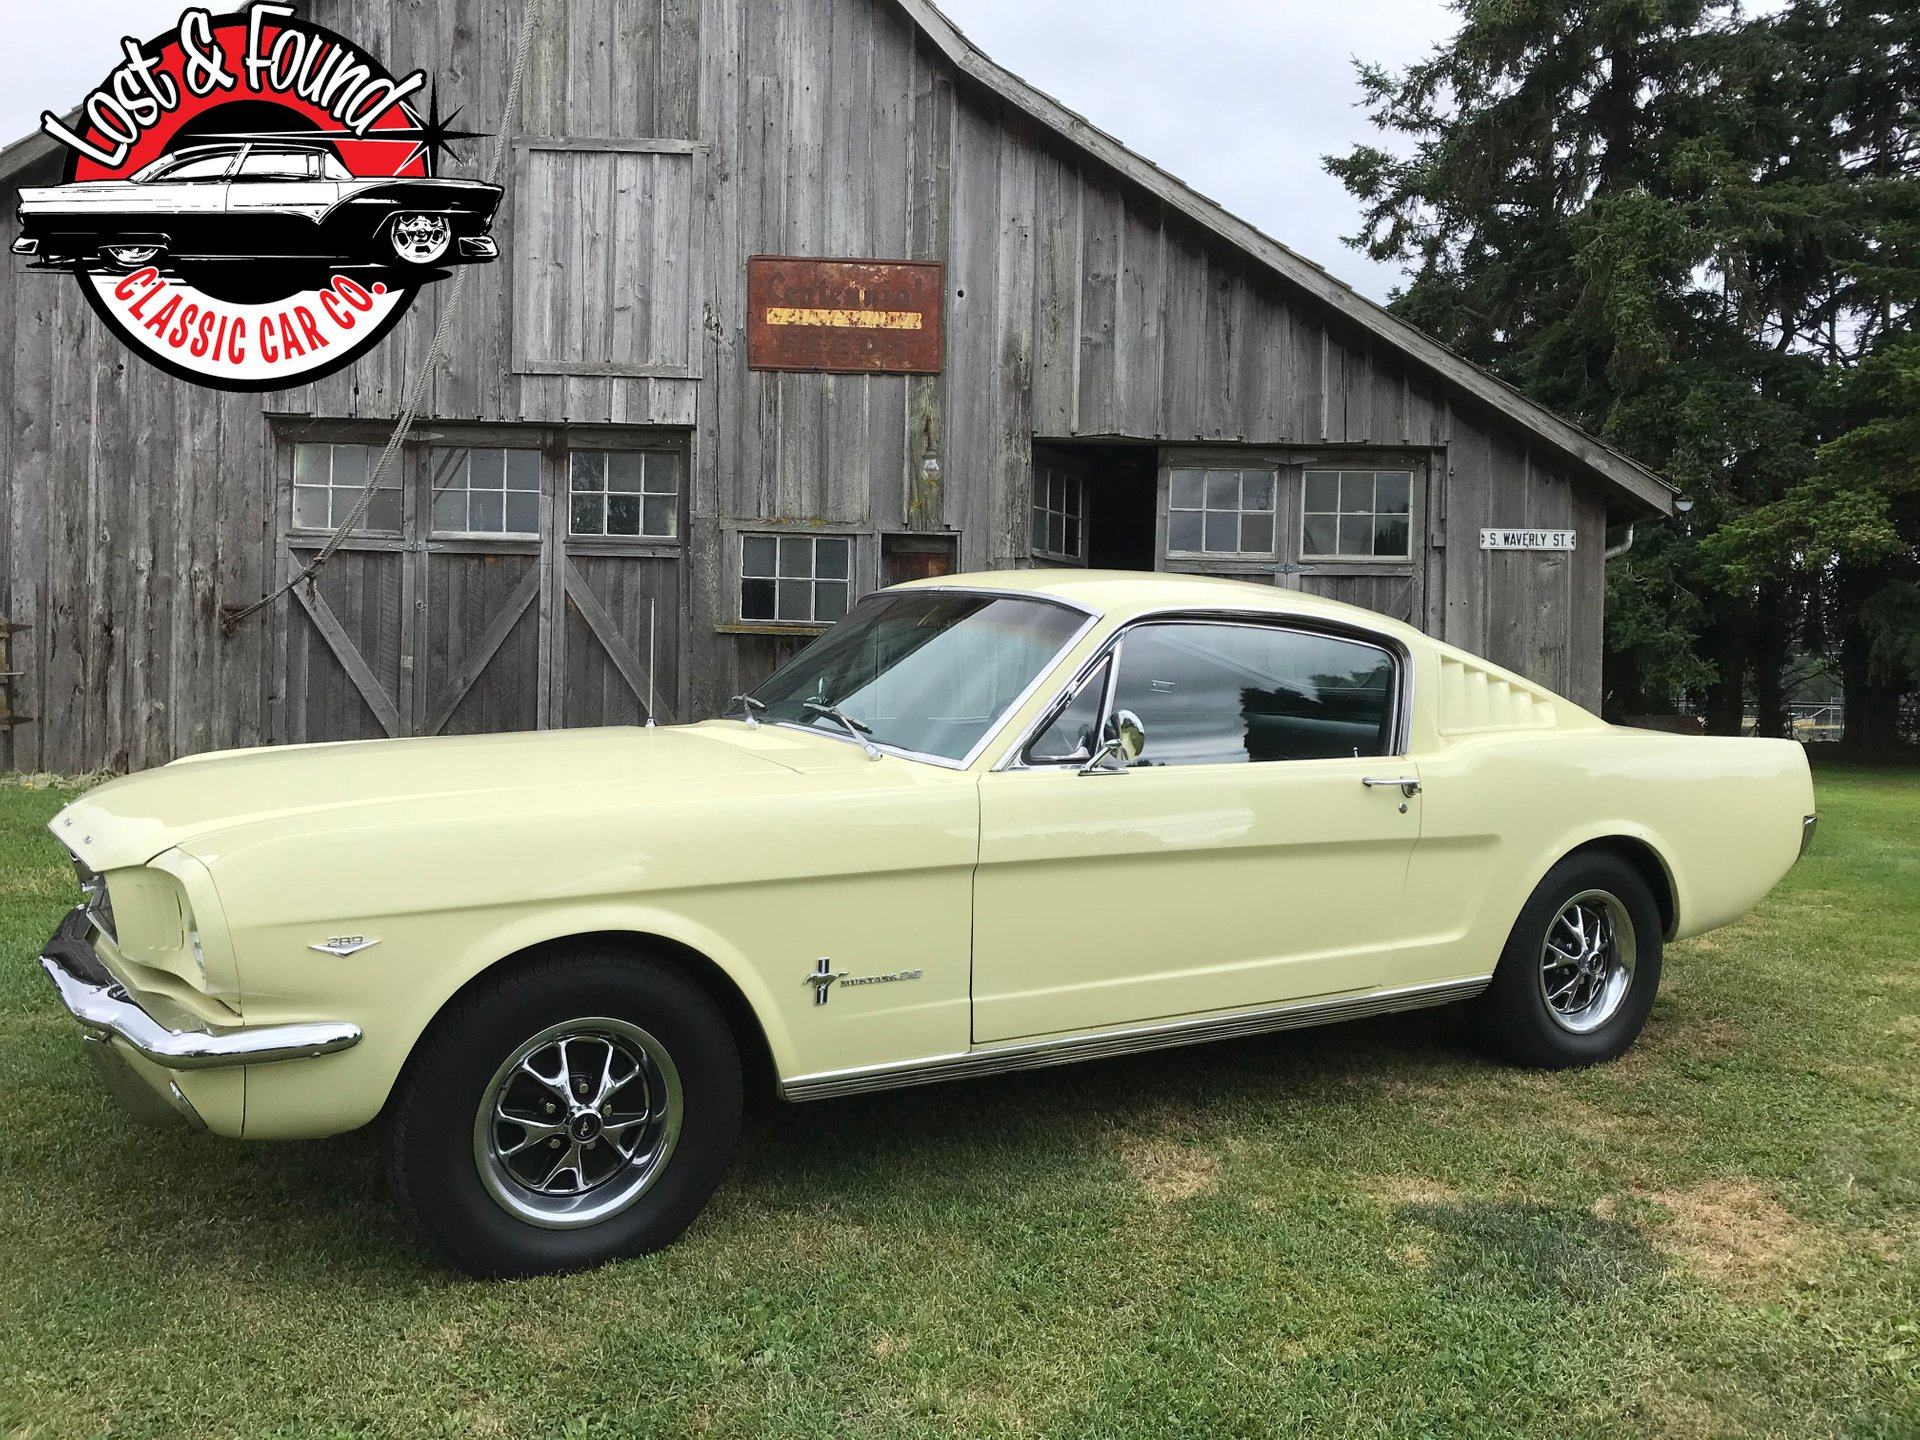 The body has slight rust in the rear quarters and the passenger side quarter has damage. 1966 Ford Mustang Fastback 2 2 Lost Found Classic Car Co